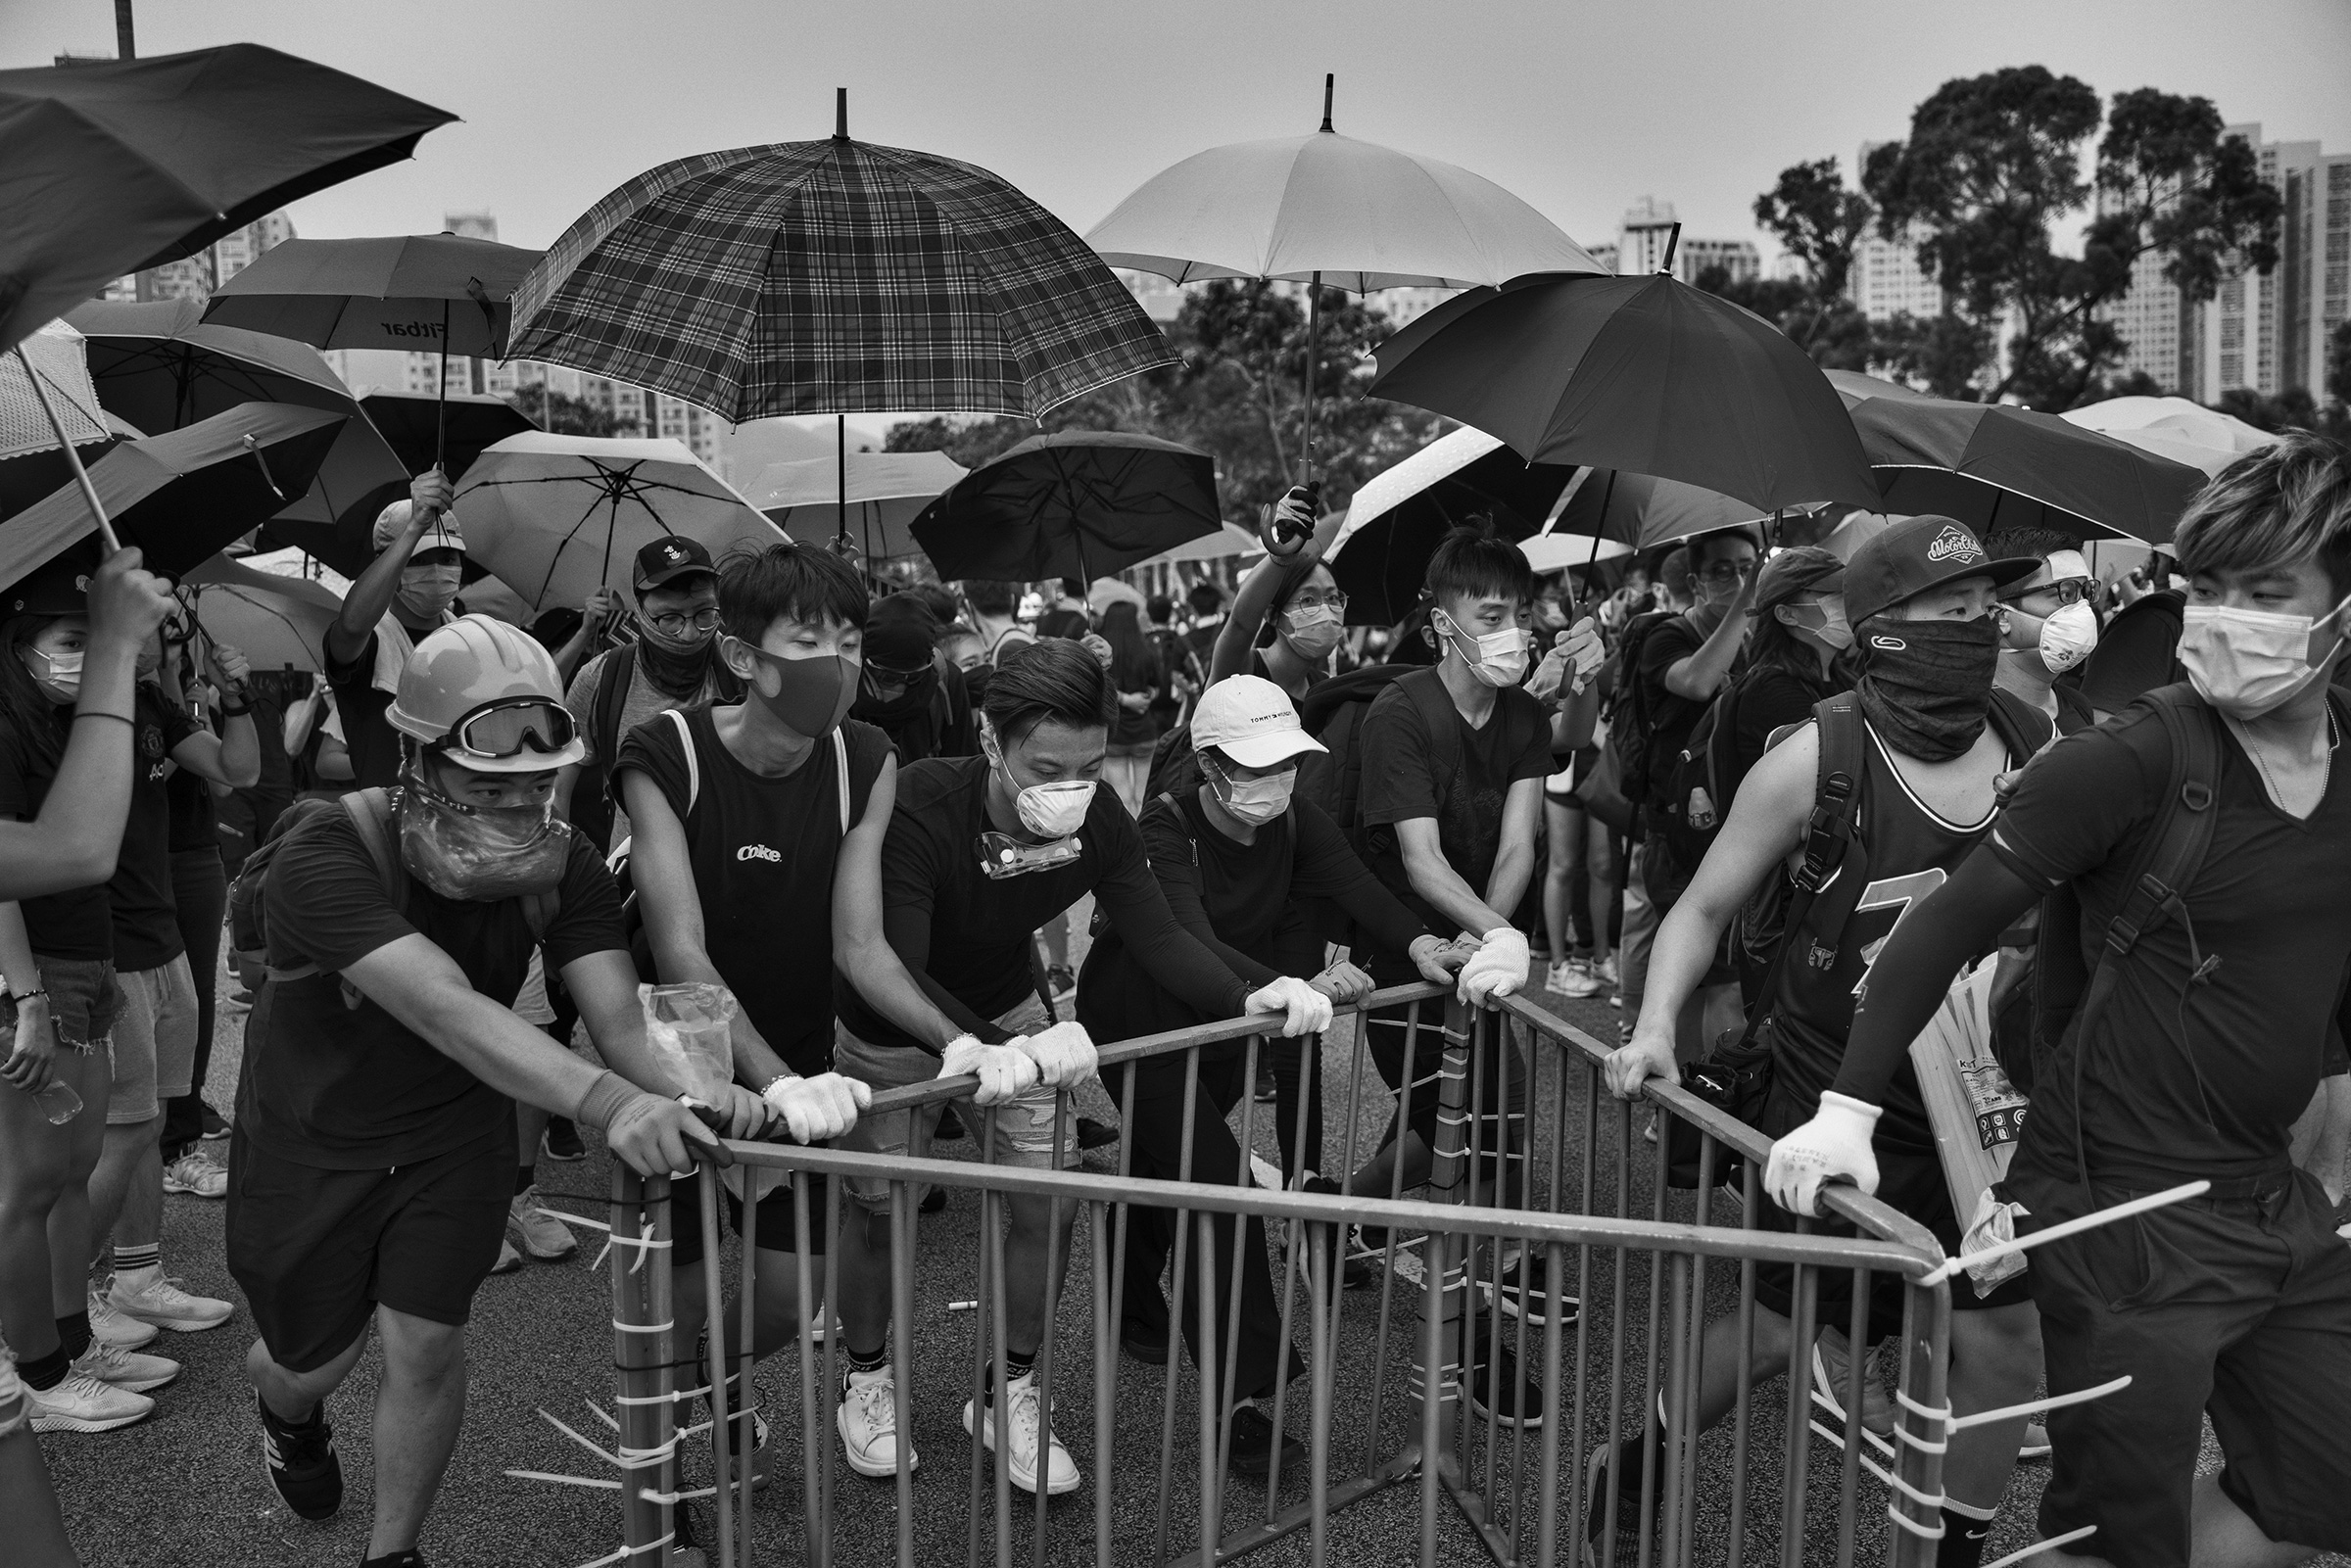 Antigovernment protesters block a road near the Tai Po police station on Aug. 10.